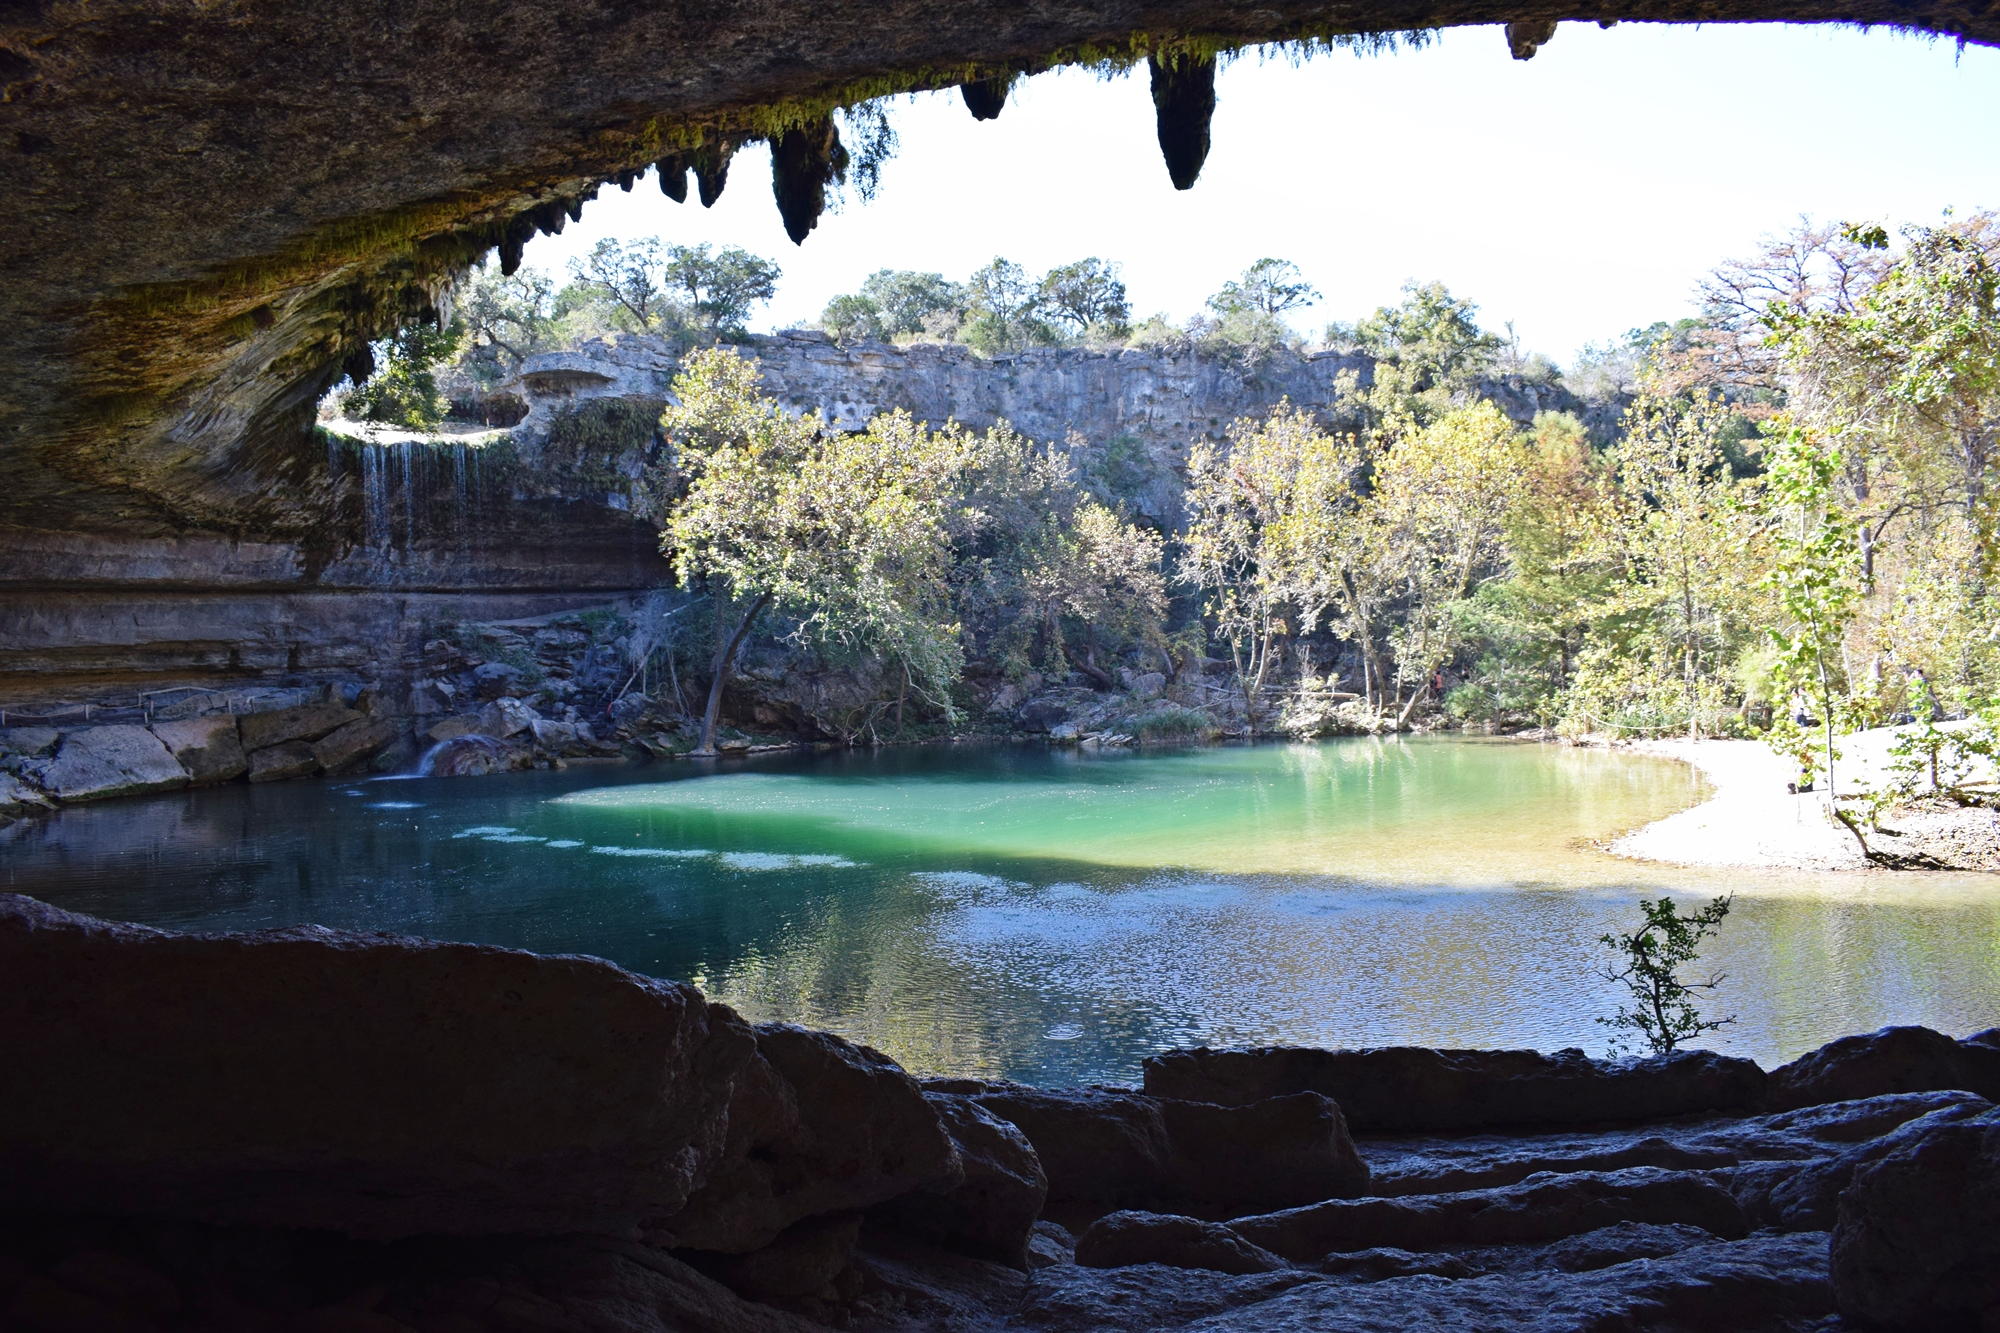 Hamilton pool preserve in dripping springs tx also coffee - Hamilton swimming pool san francisco ...